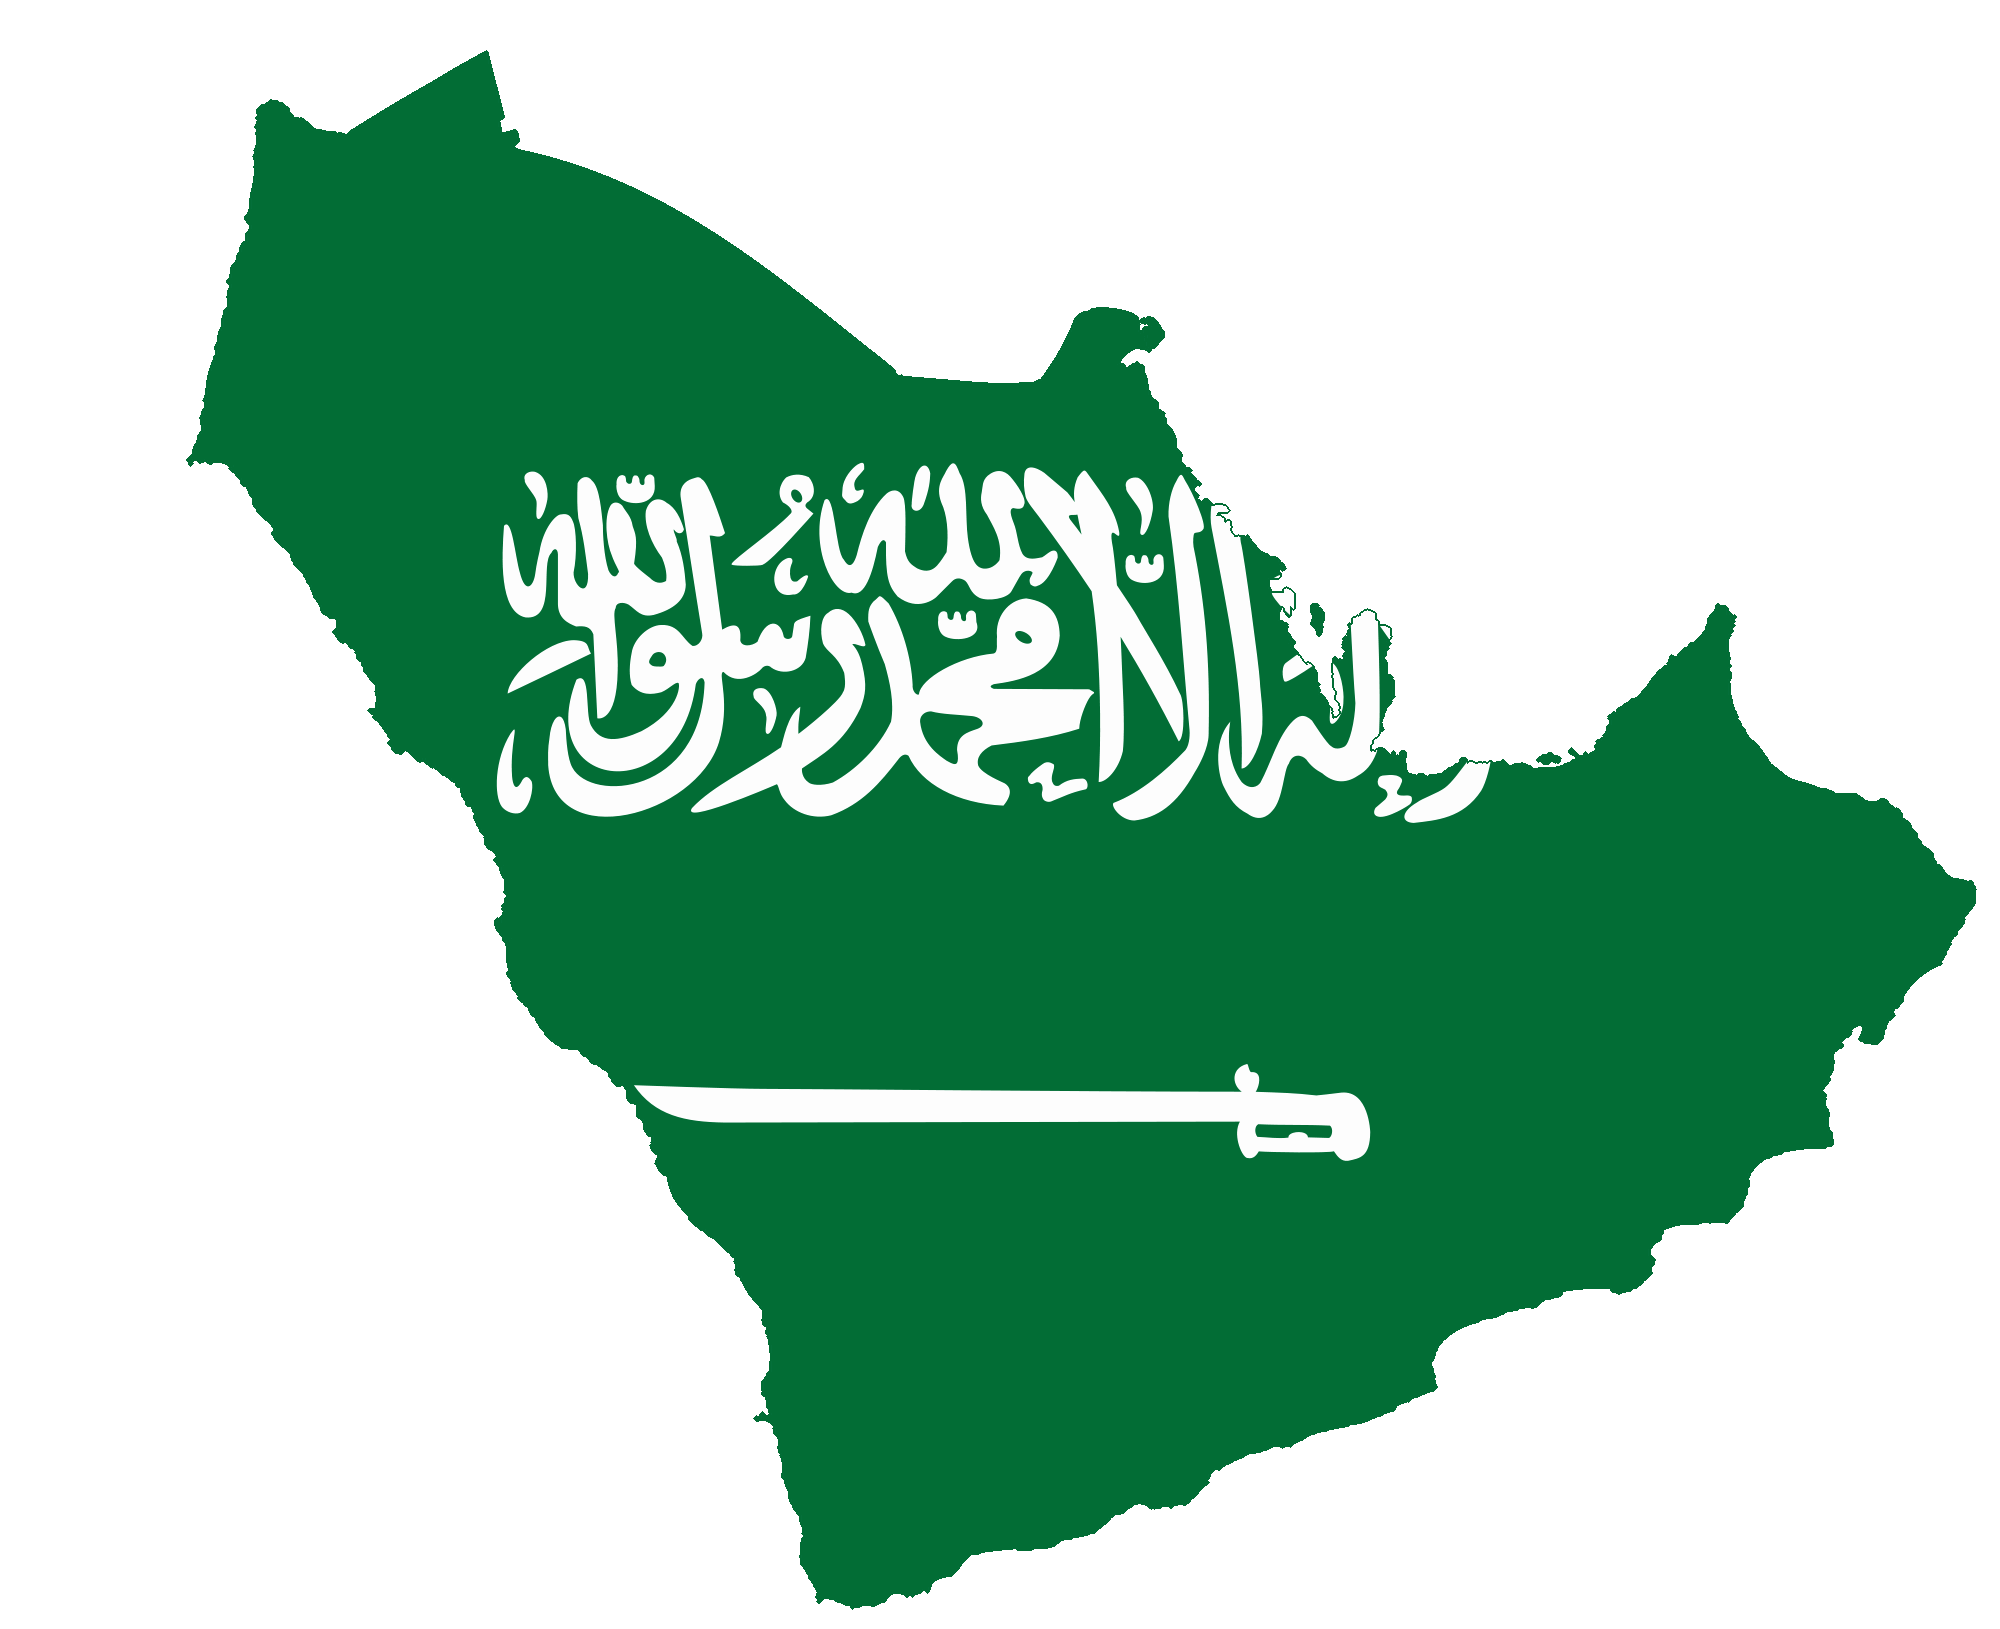 http://upload.wikimedia.org/wikipedia/commons/c/c1/Flag_of_Greater_Saudi_Arabia.png